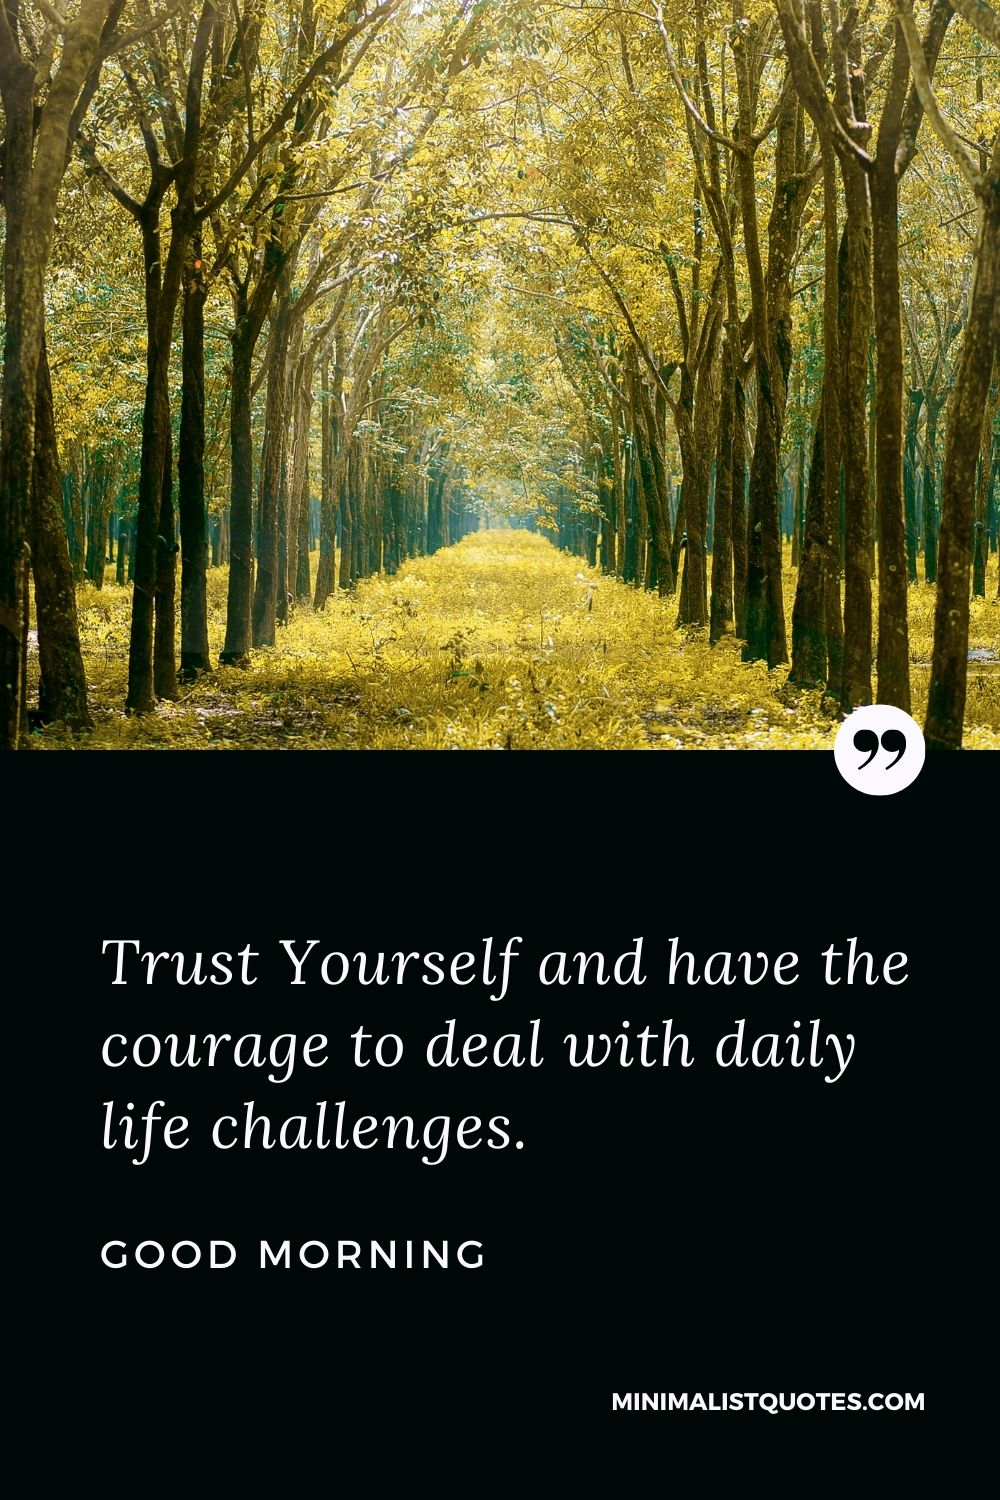 Good Morning Wish & Message With Image: Trust Yourselfand have the courage to deal with daily life challenges.